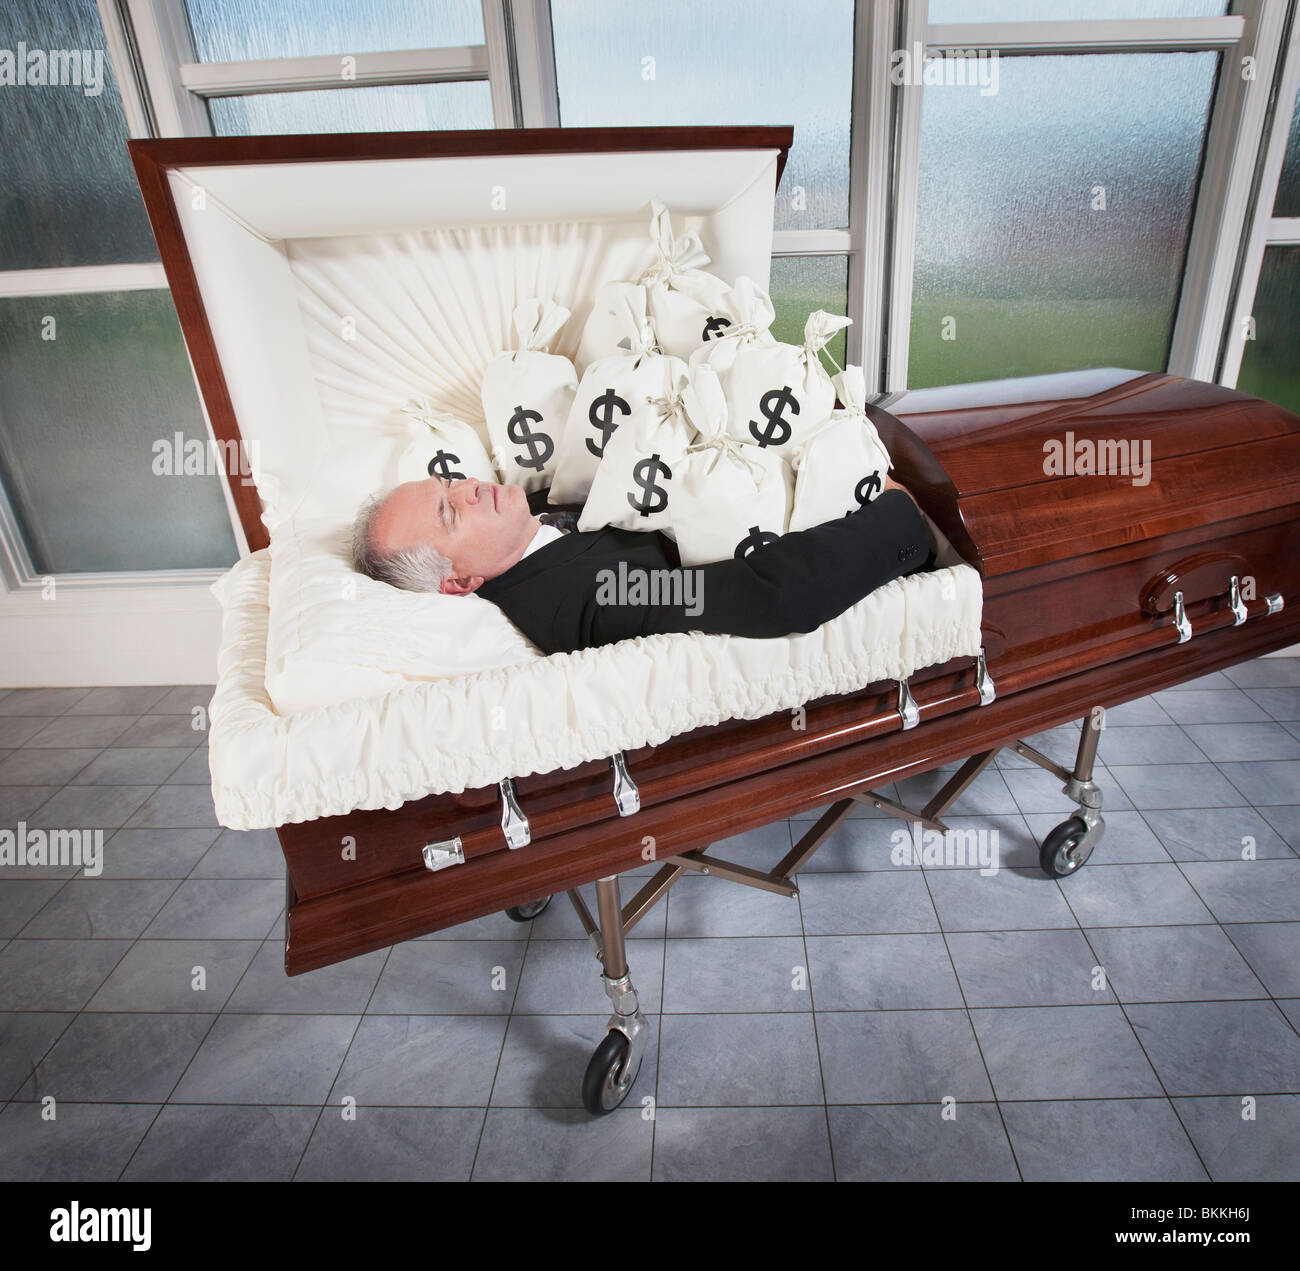 A Man Laying In A Coffin Surrounded By Bags Of Money - Stock Image